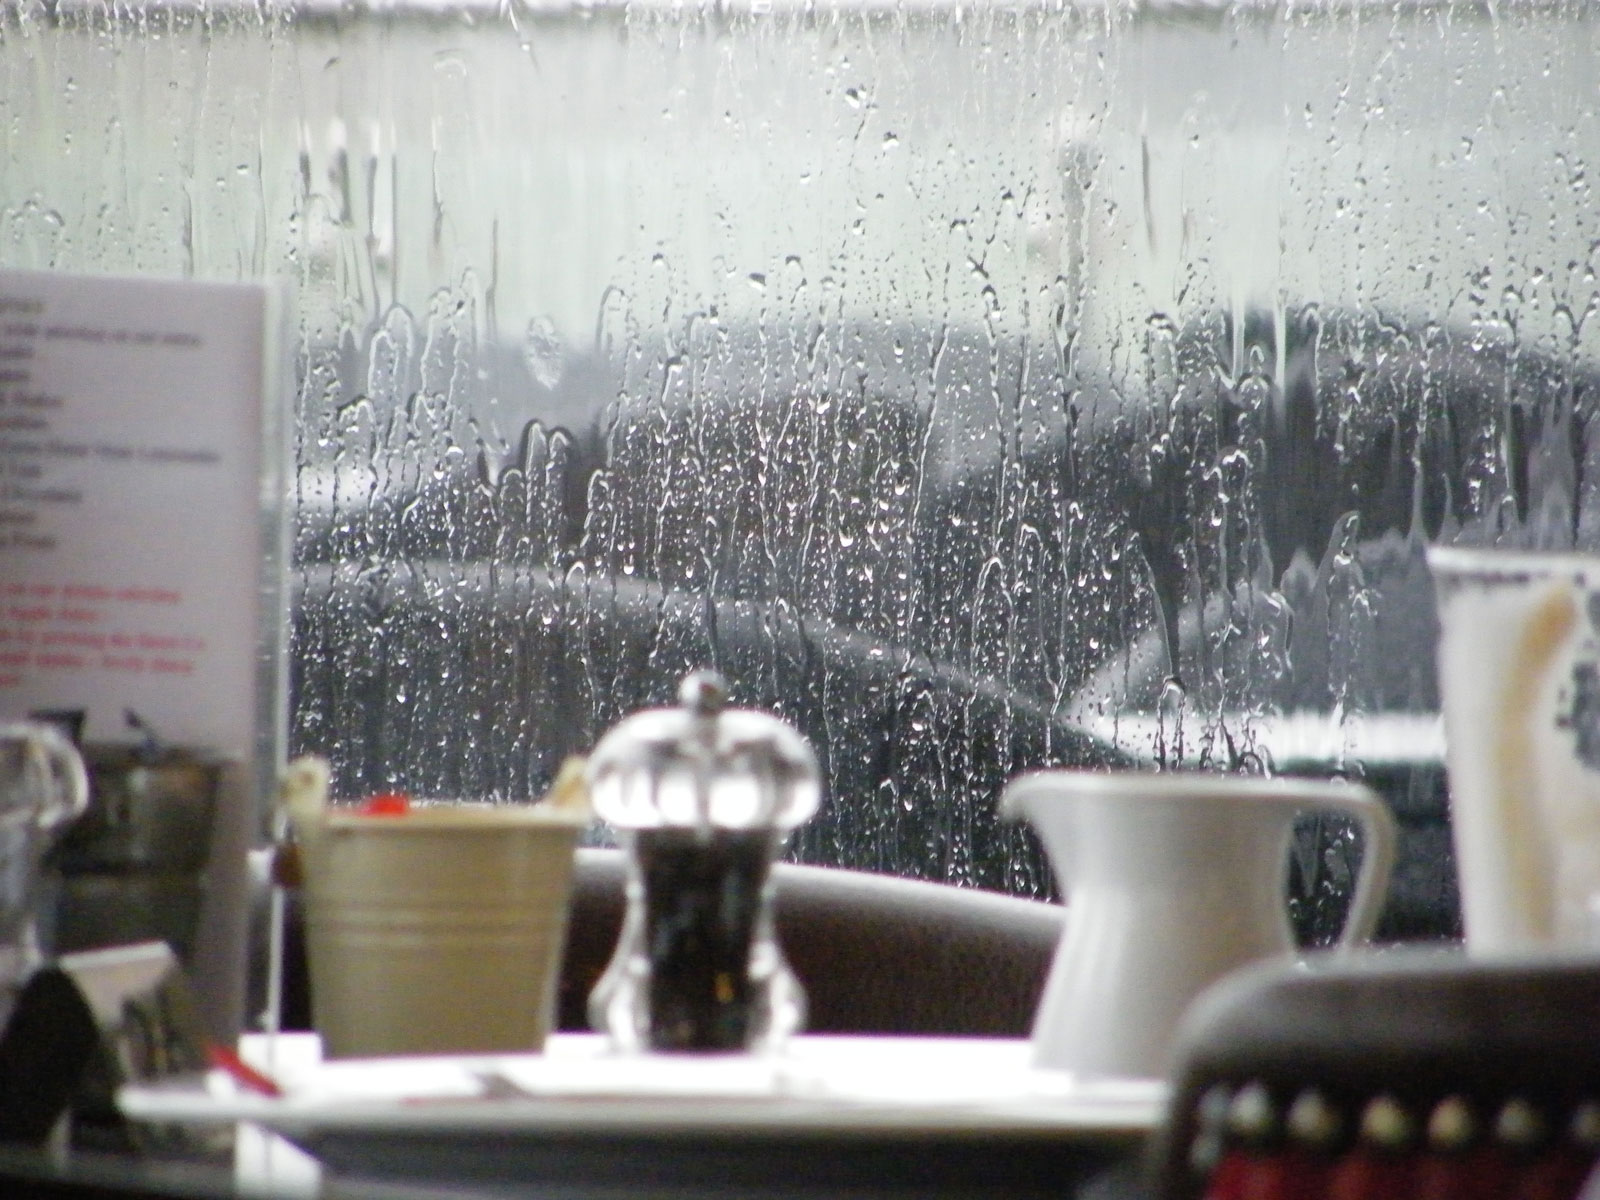 rain-bad-restaurant-reviews-FT-BLOG0319.jpg